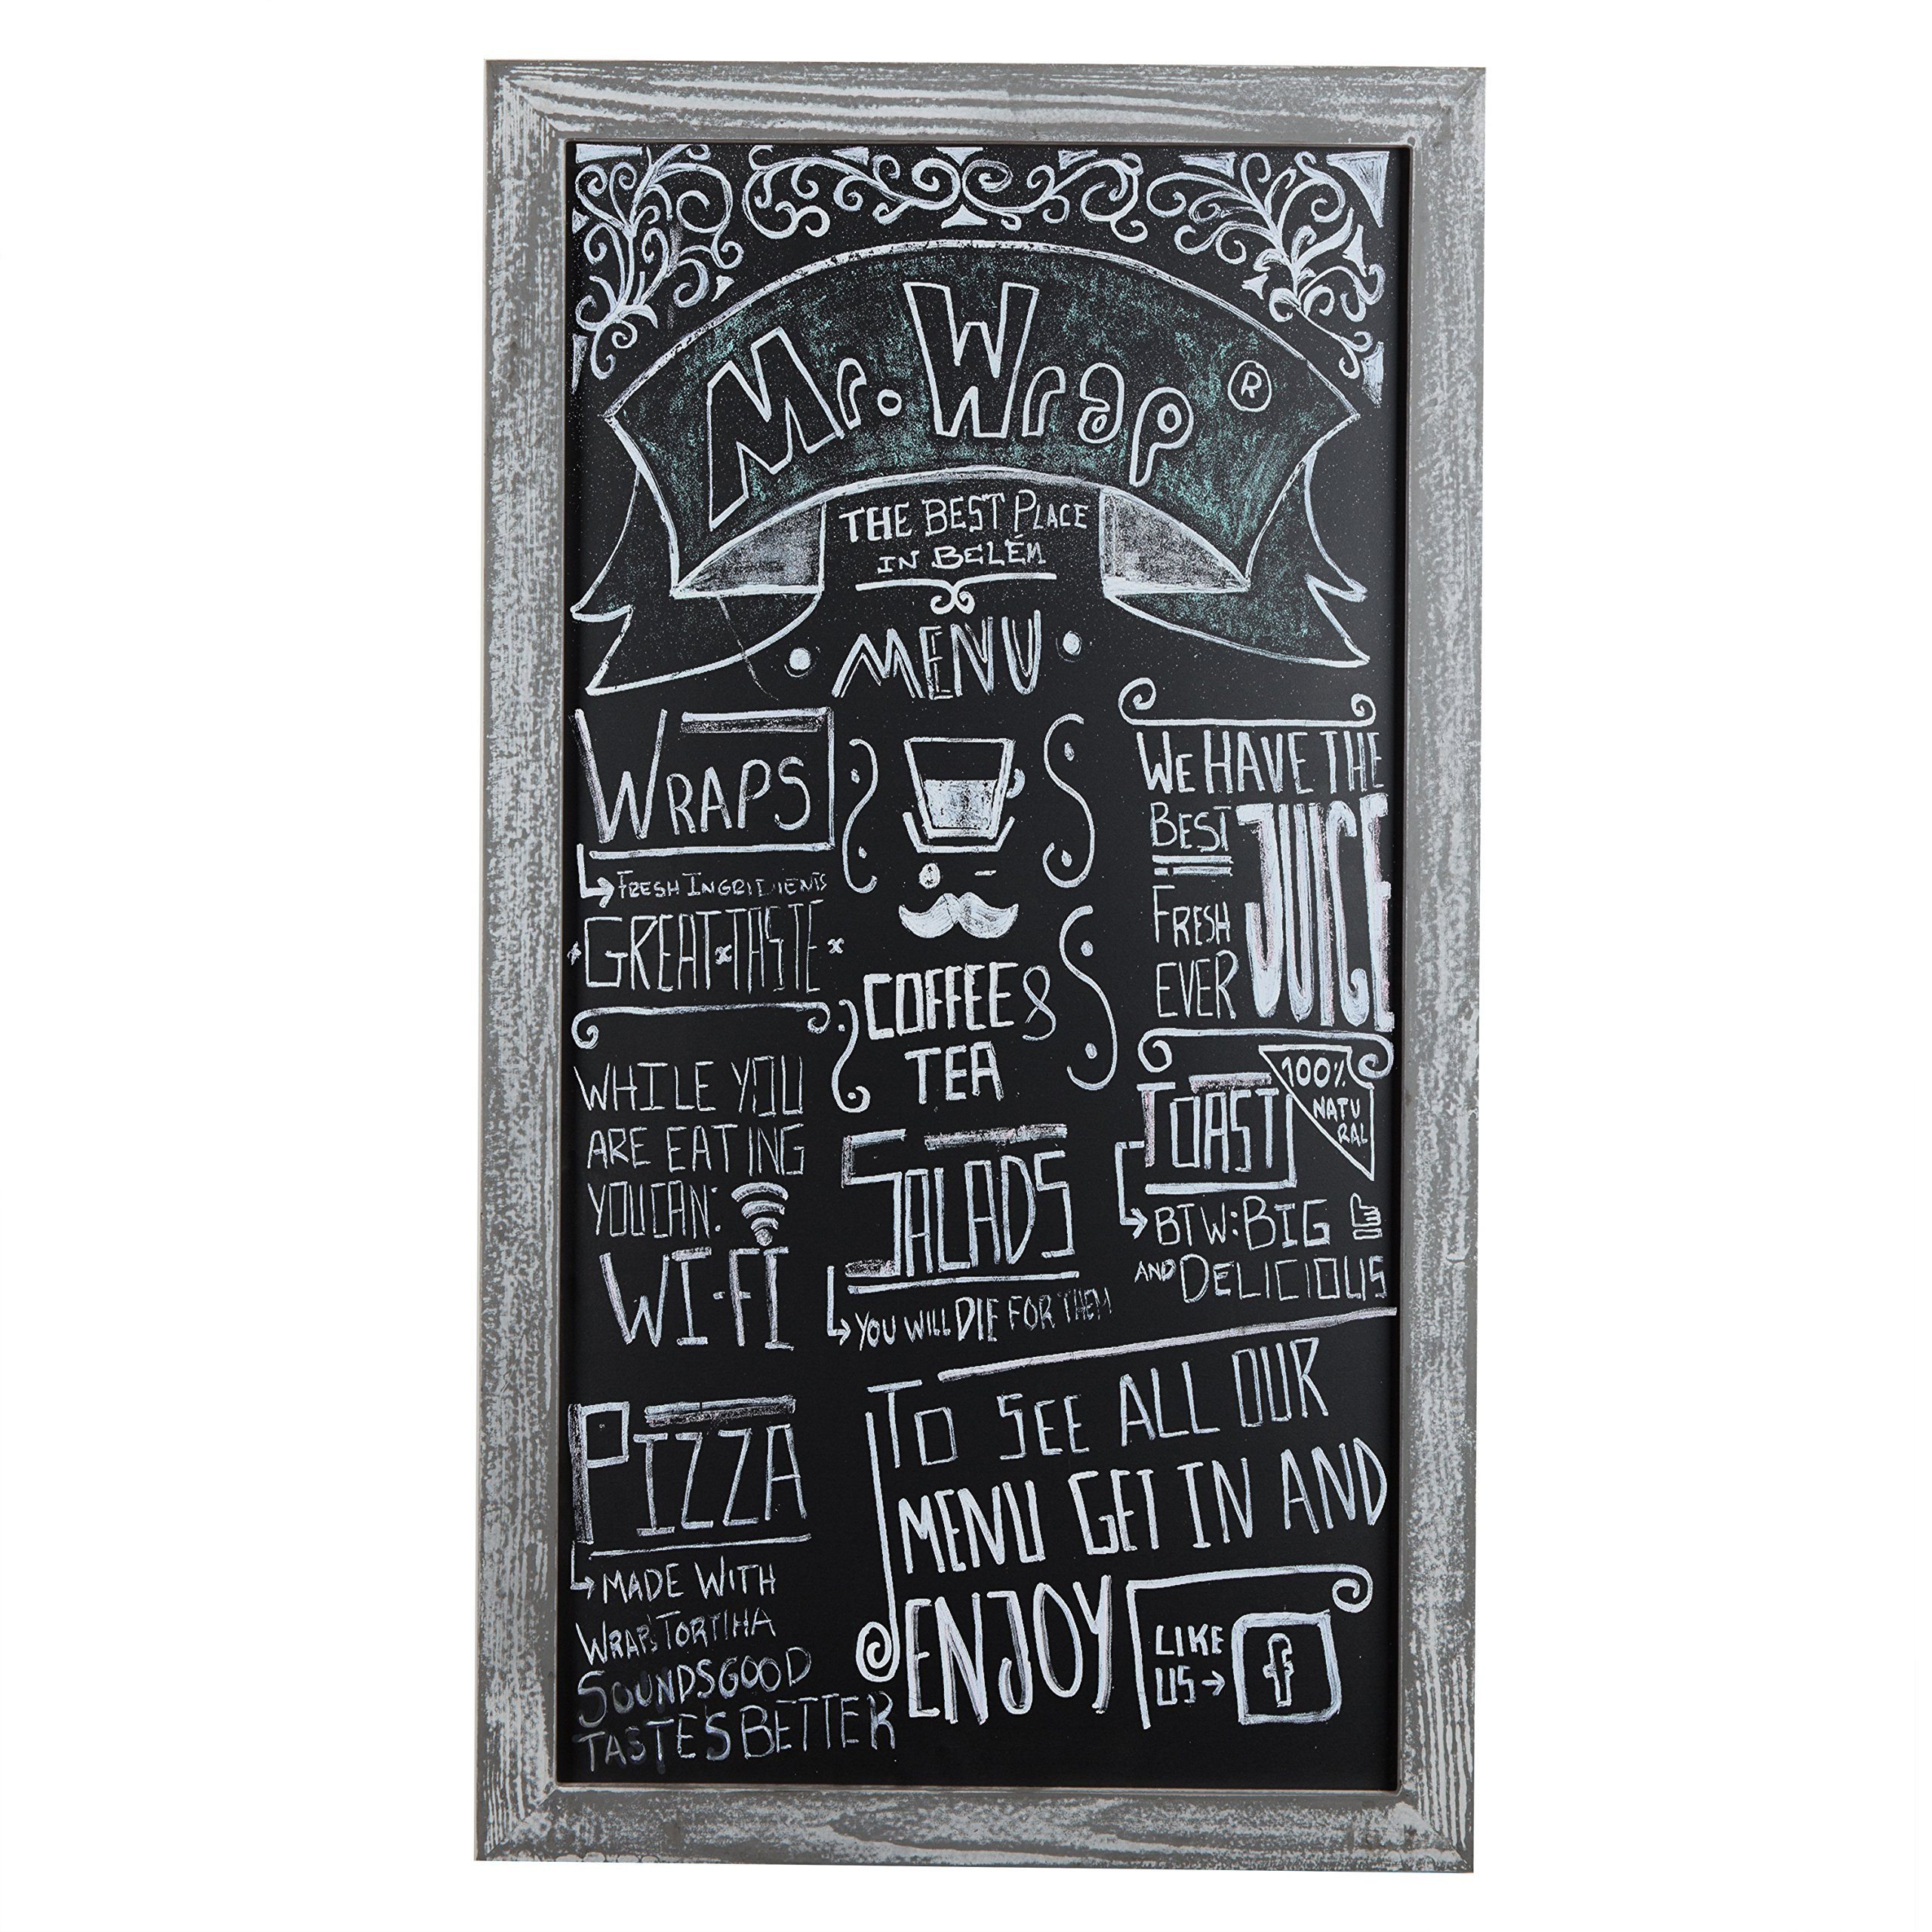 MyGift Rustic 35-Inch Wall Hanging Chalkboard Sign with Distressed Gray Wood Frame